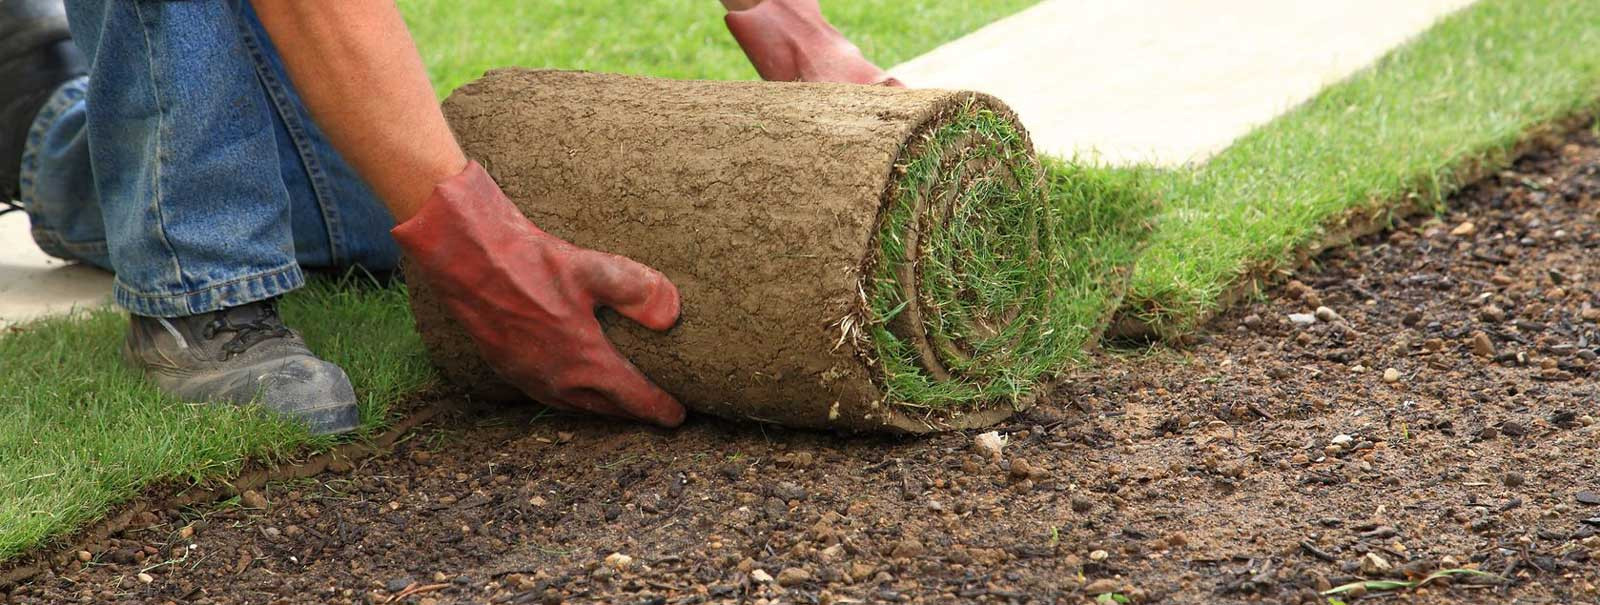 Laying Sod- Landscape Design, Lawn Maintenance, Mulching, Pressure Washing- Hagerstown and Frederick MD